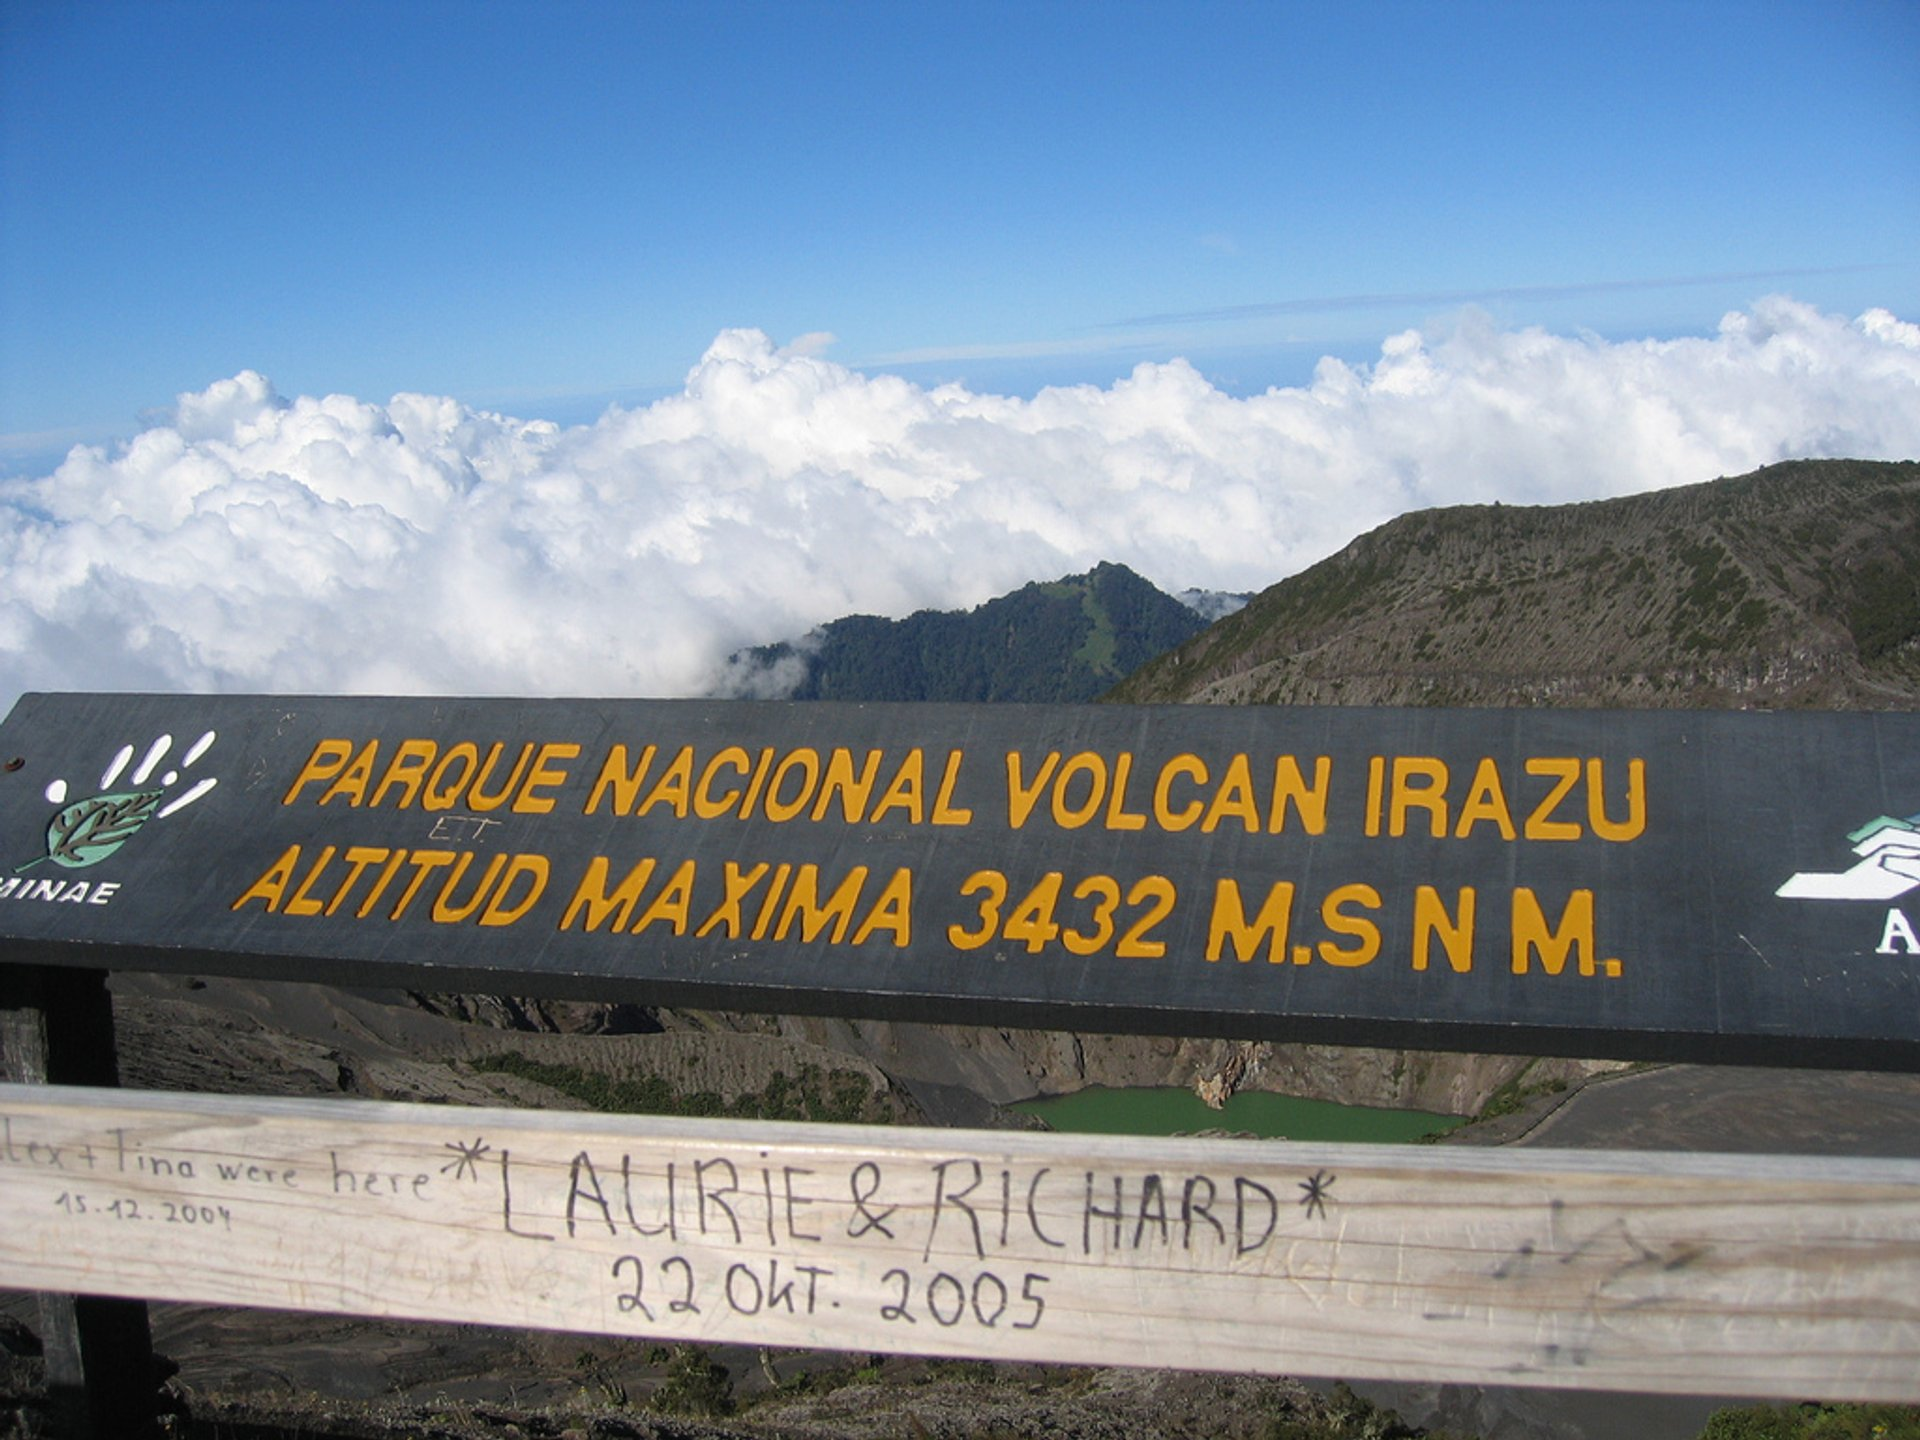 Best time to see Irazu Volcano in Costa Rica 2020